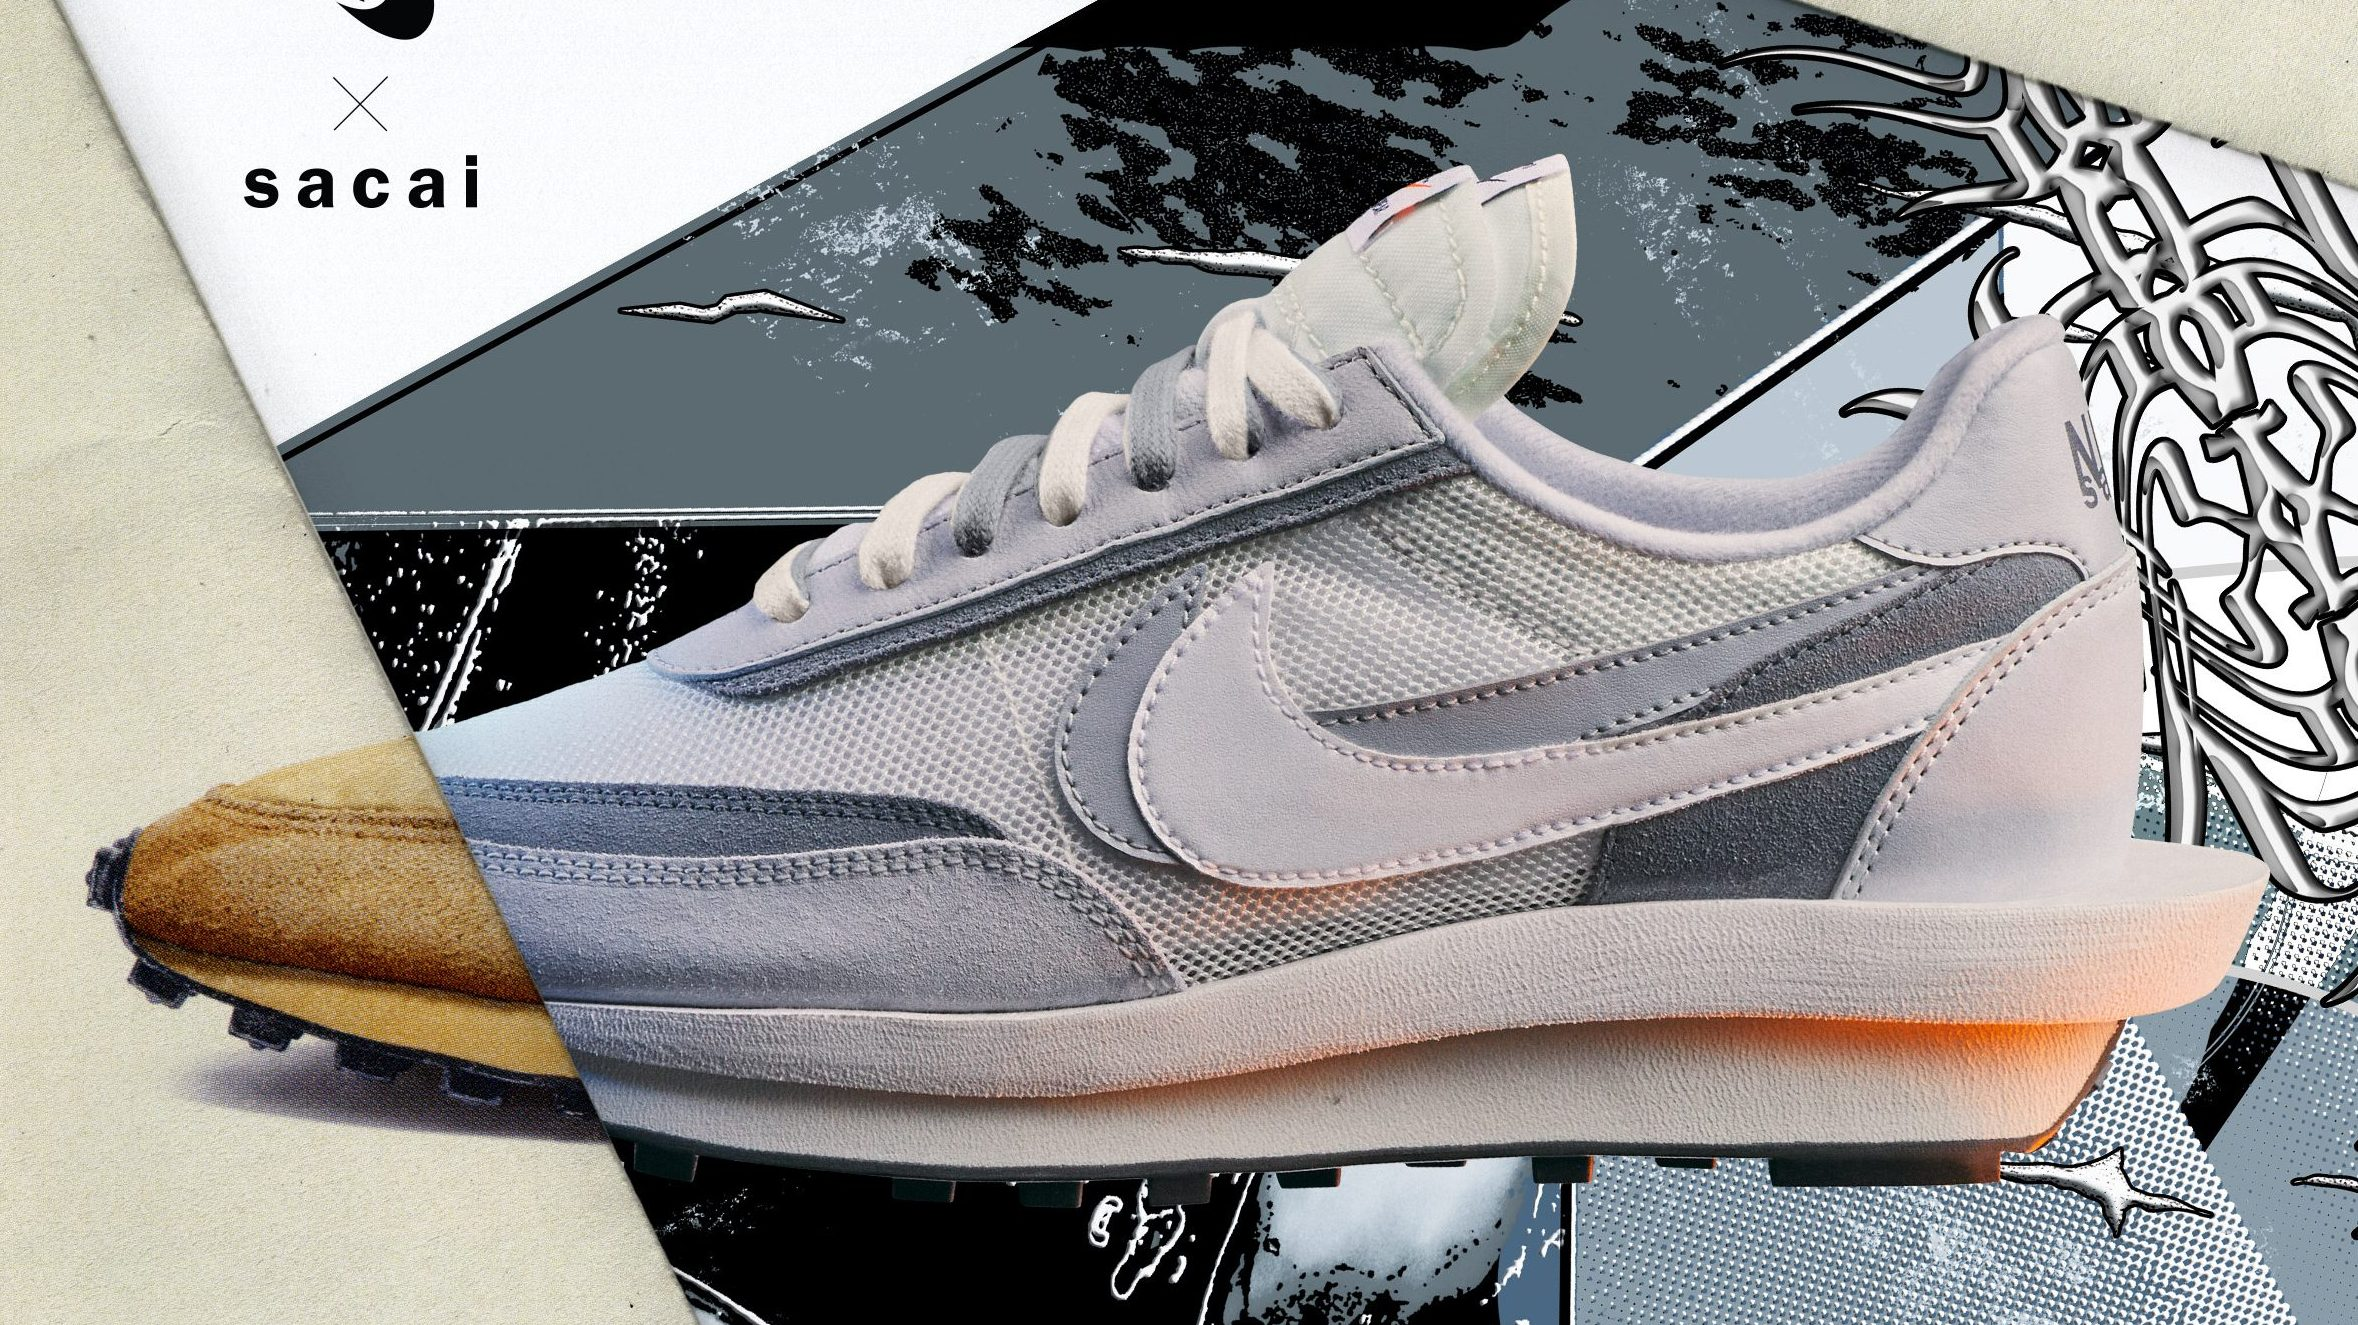 Nike x Sacai LDWaffle Release Date for